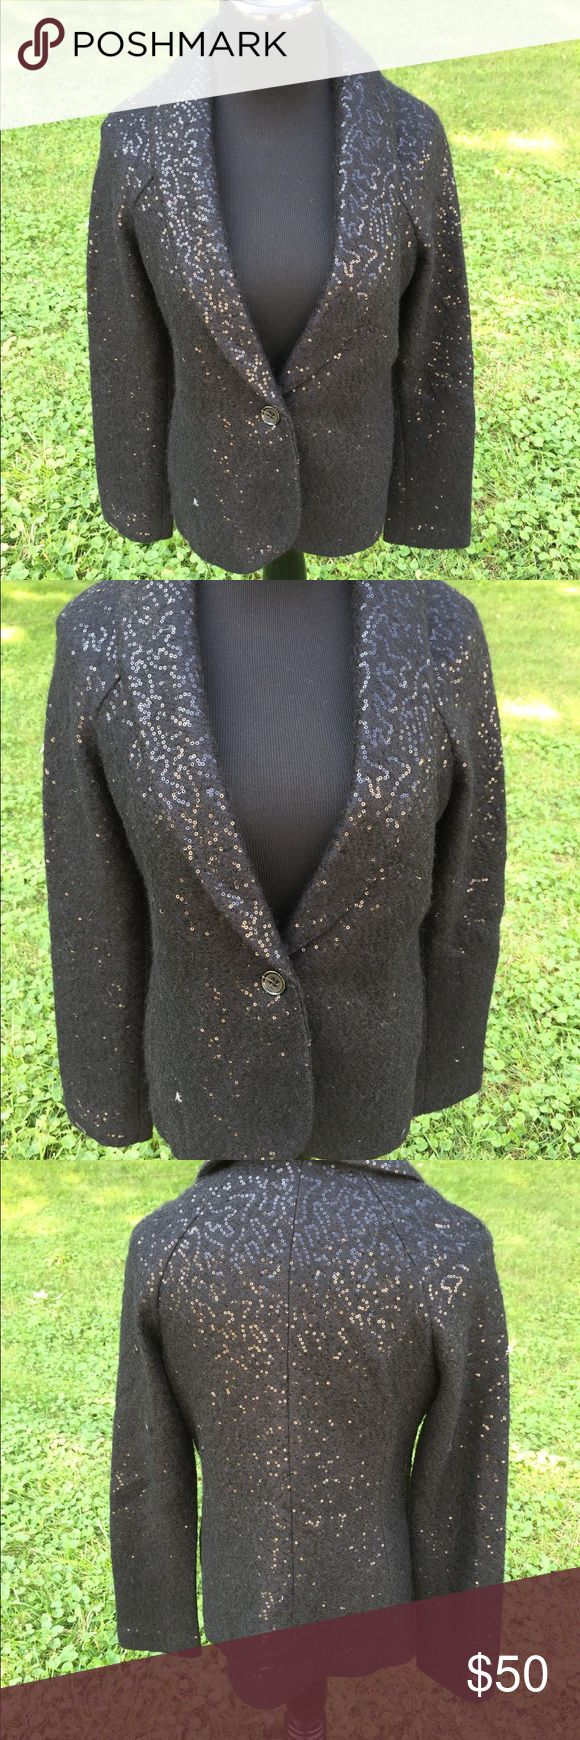 Banana Republic Blazer Stunning sequined Blazer. Like new. Never worn.  Perfect fall piece! Massive closet clean out! Items may be wrinkled from storage. Sellers disclaimer: A few bad apples ruin it for the bunch, so for buyer and seller protection, I record the condition of each item at packaging & shipment. No offline transactions. Spammers will be reported and blocked. No trades. Lowball offers will be immediately declined. I make every effort to ship within two business days. Banana…